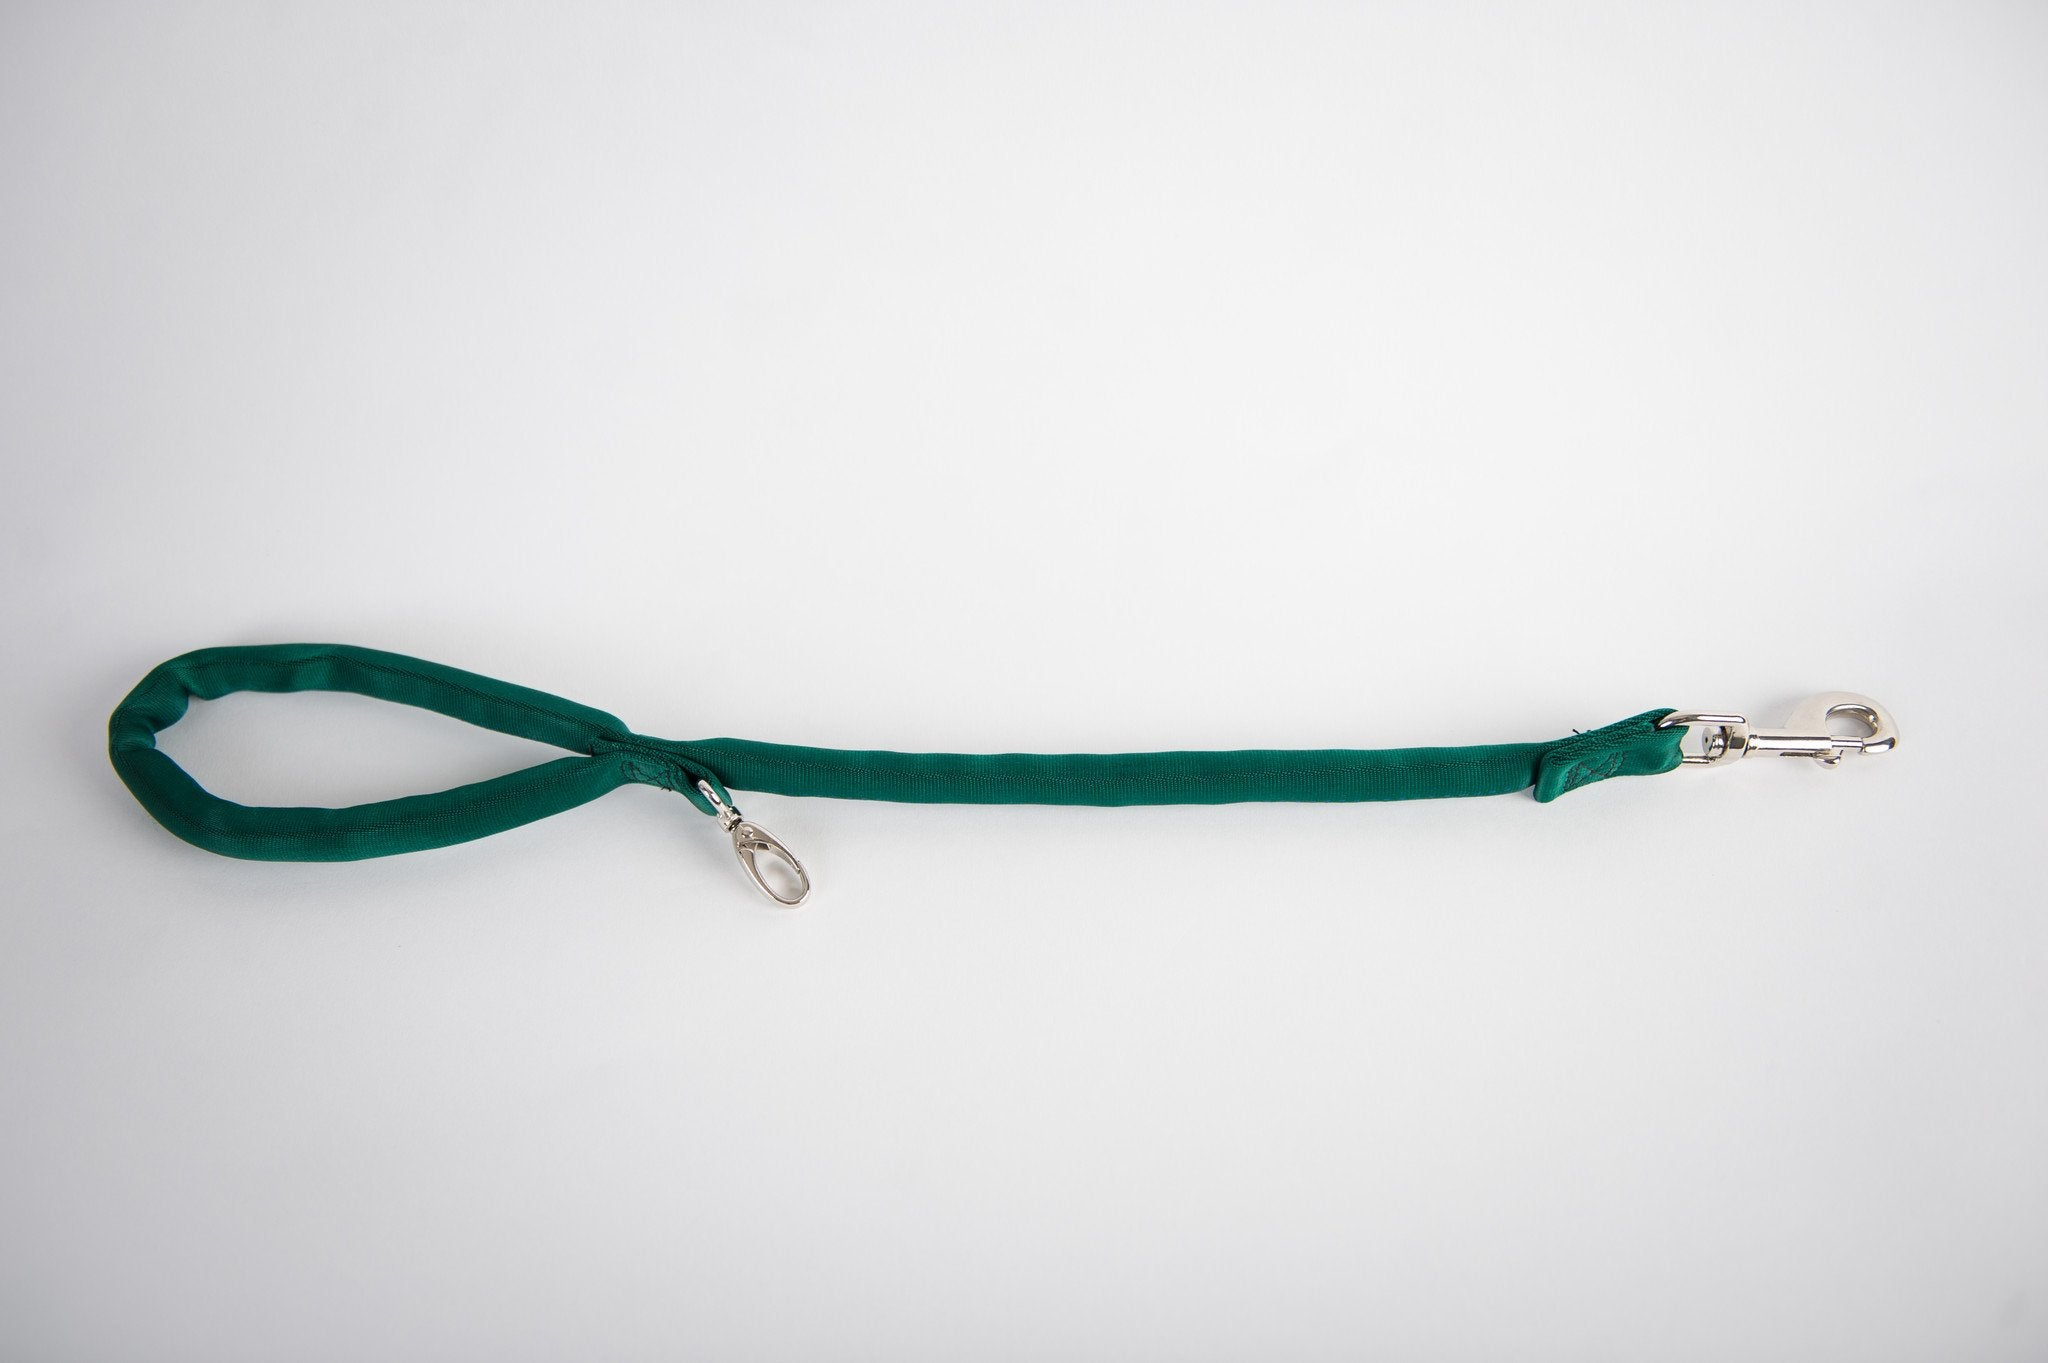 Hunter Green-Luv My Leash, 2-6 Foot option ,Lightweight, Padded,Dual Snap, 5 Leashes in 1 ,Made in U.S.A.